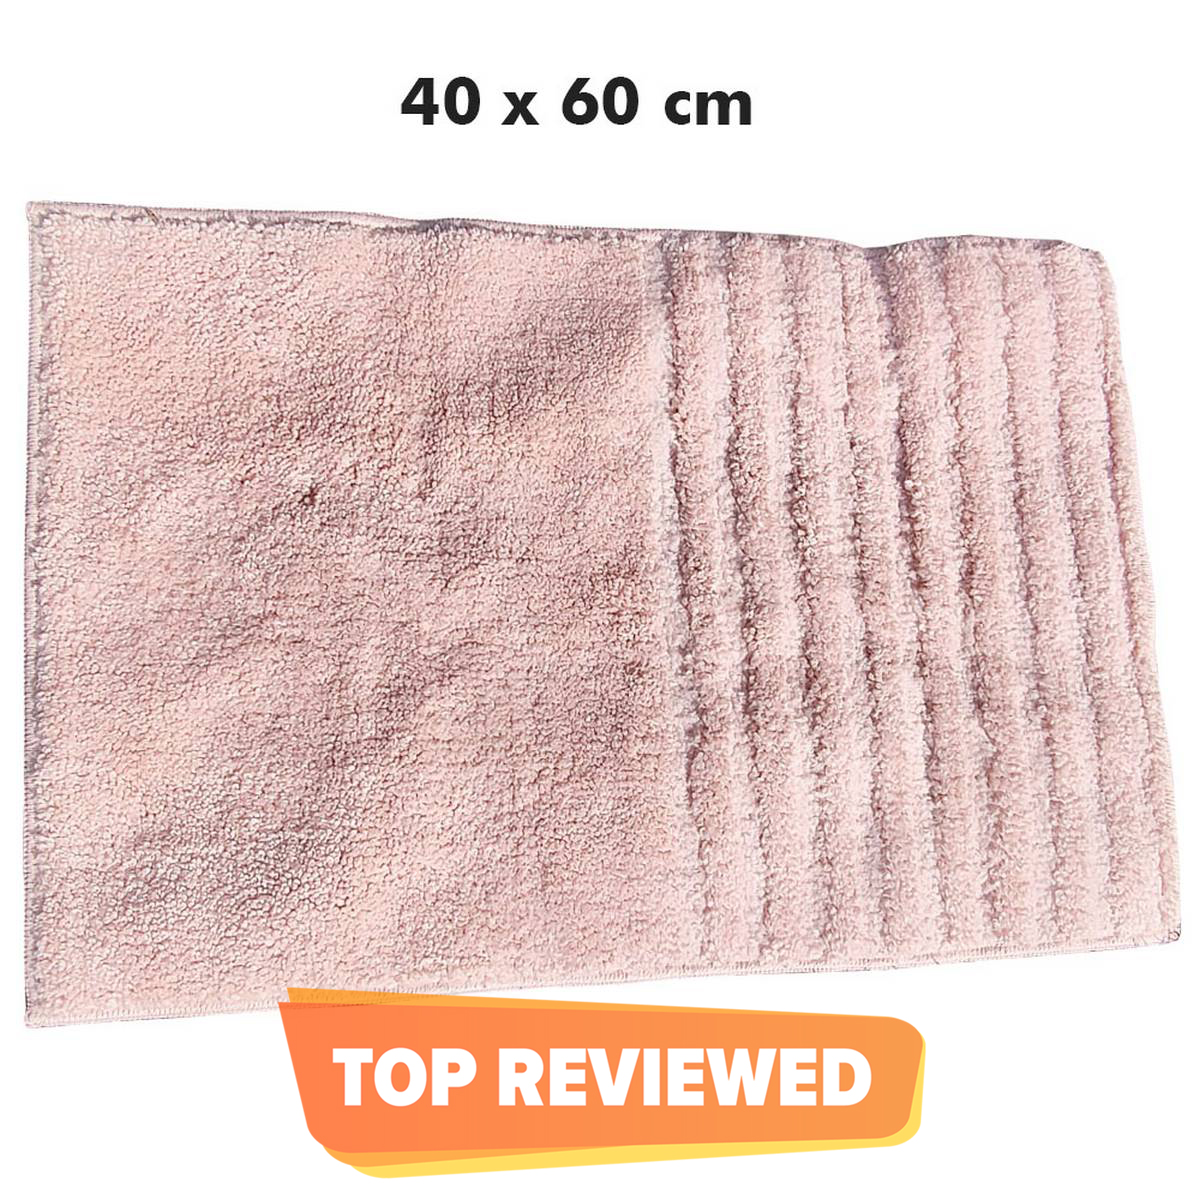 Relaxsit Thick Pile Bed Side Rugs Shaggy Soft Thick Modern Design High Pile Floor Carpet entrance mat, bath mat door mat different options written on 1st picture